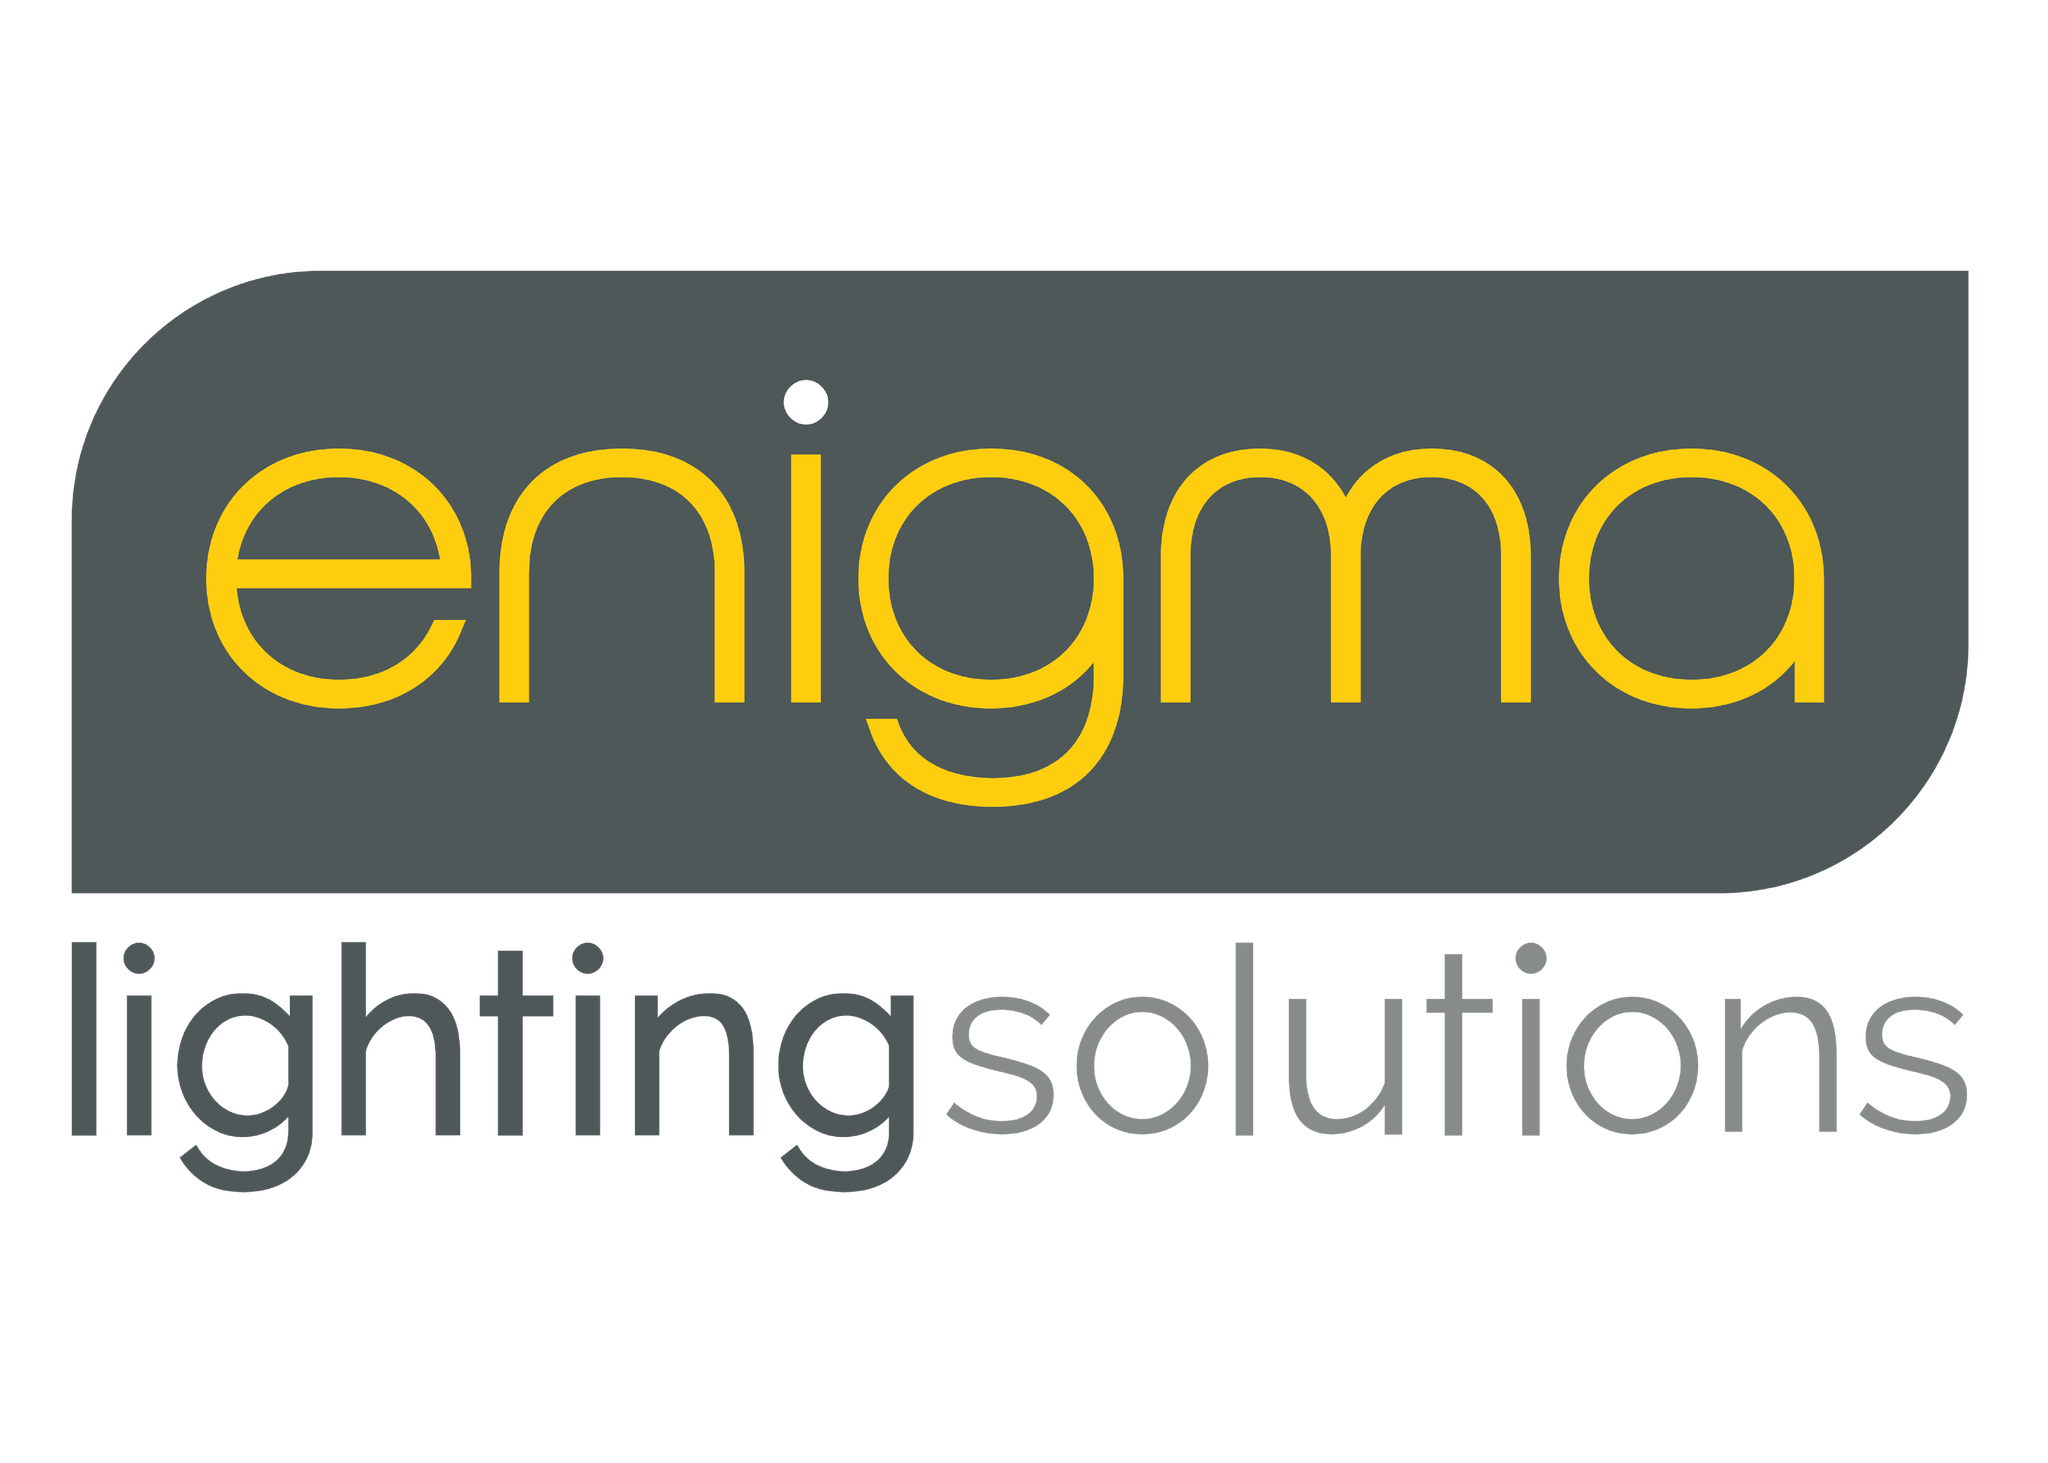 Enigma Lighting Solutions